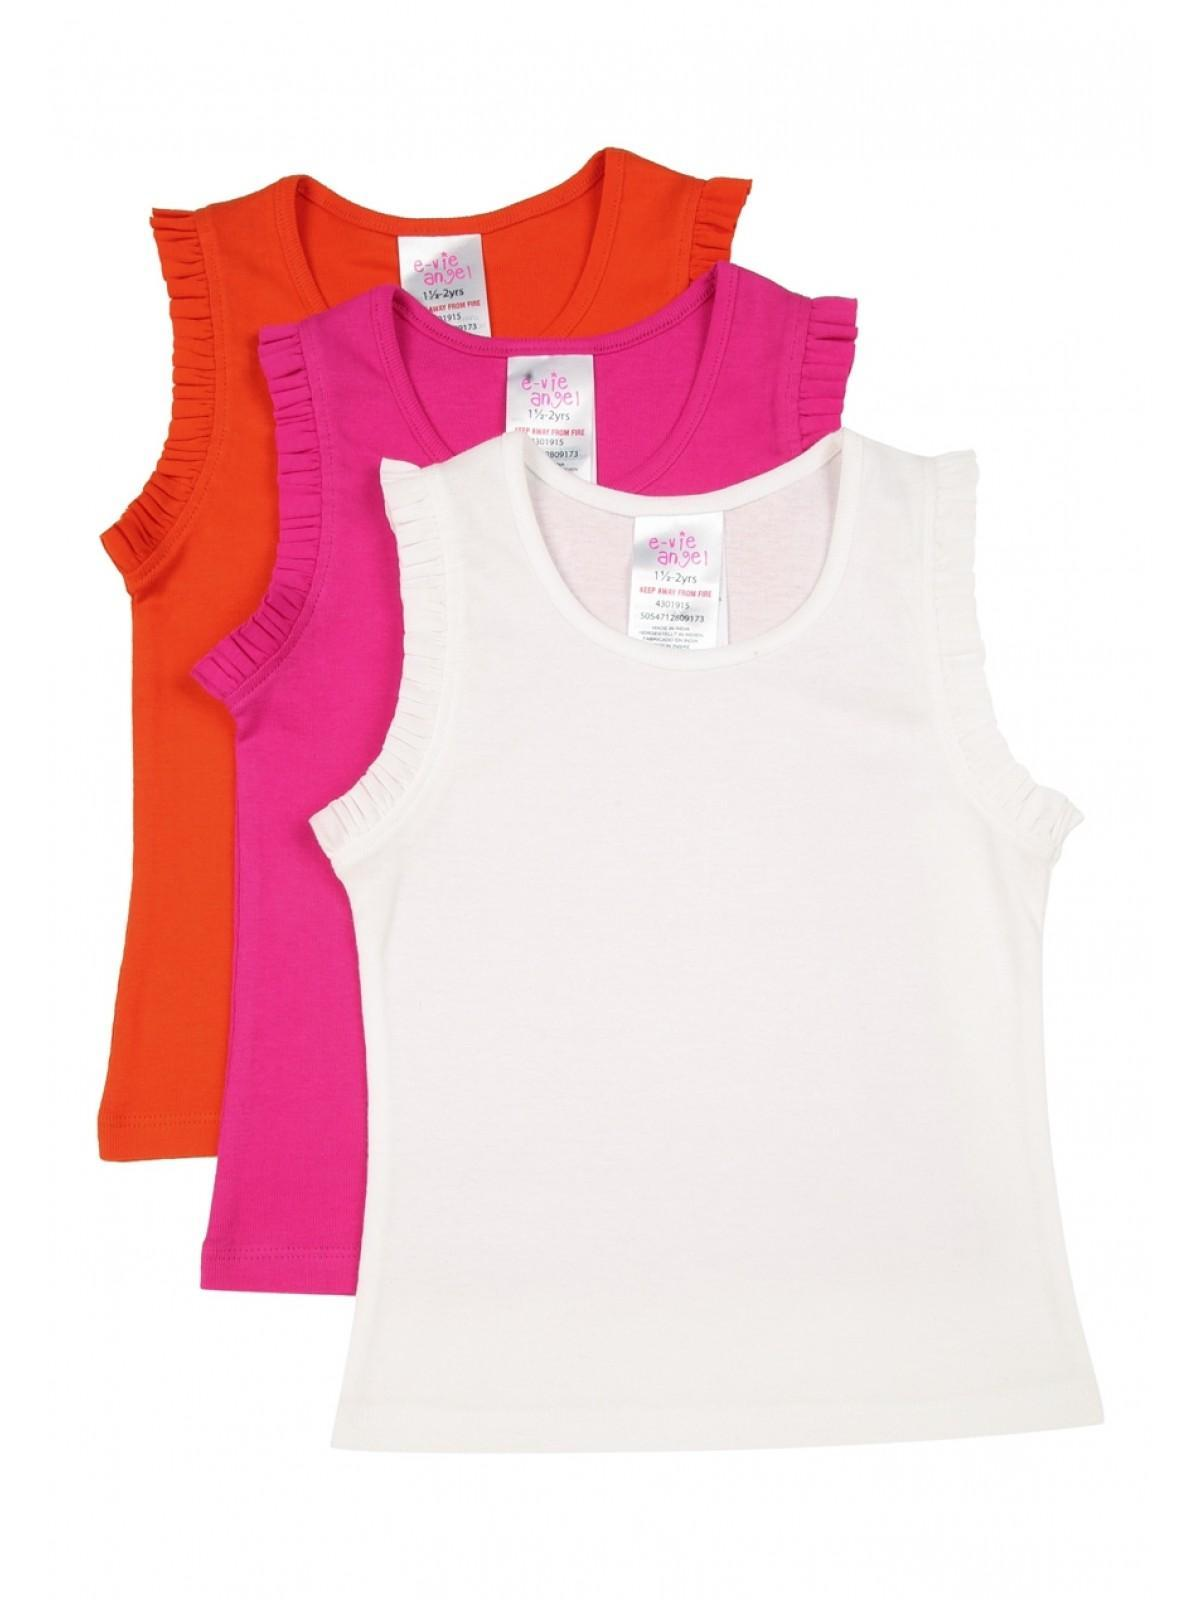 05c891548d6a0b Younger Girls 3pk Vest Tops | Peacocks